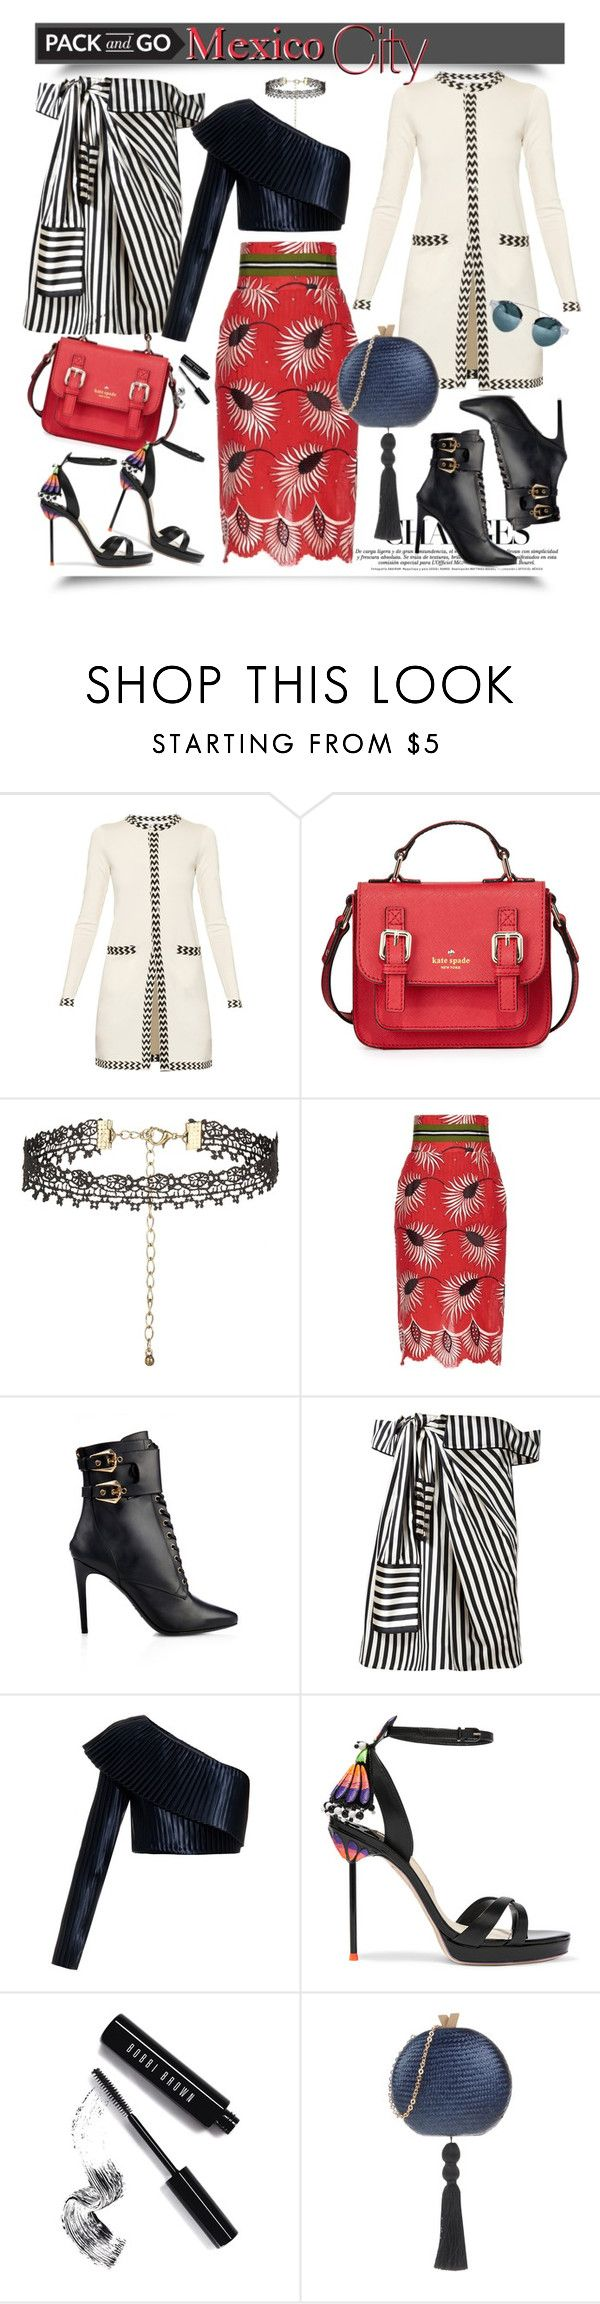 """""""Mexico City: Pack & Go!"""" by esch103 ❤ liked on Polyvore featuring Diane Von Furstenberg, Kate Spade, New Look, Stella Jean, Balmain, Monse, Sophia Webster, Bobbi Brown Cosmetics, Hoss Intropia and polyvoreeditorial"""